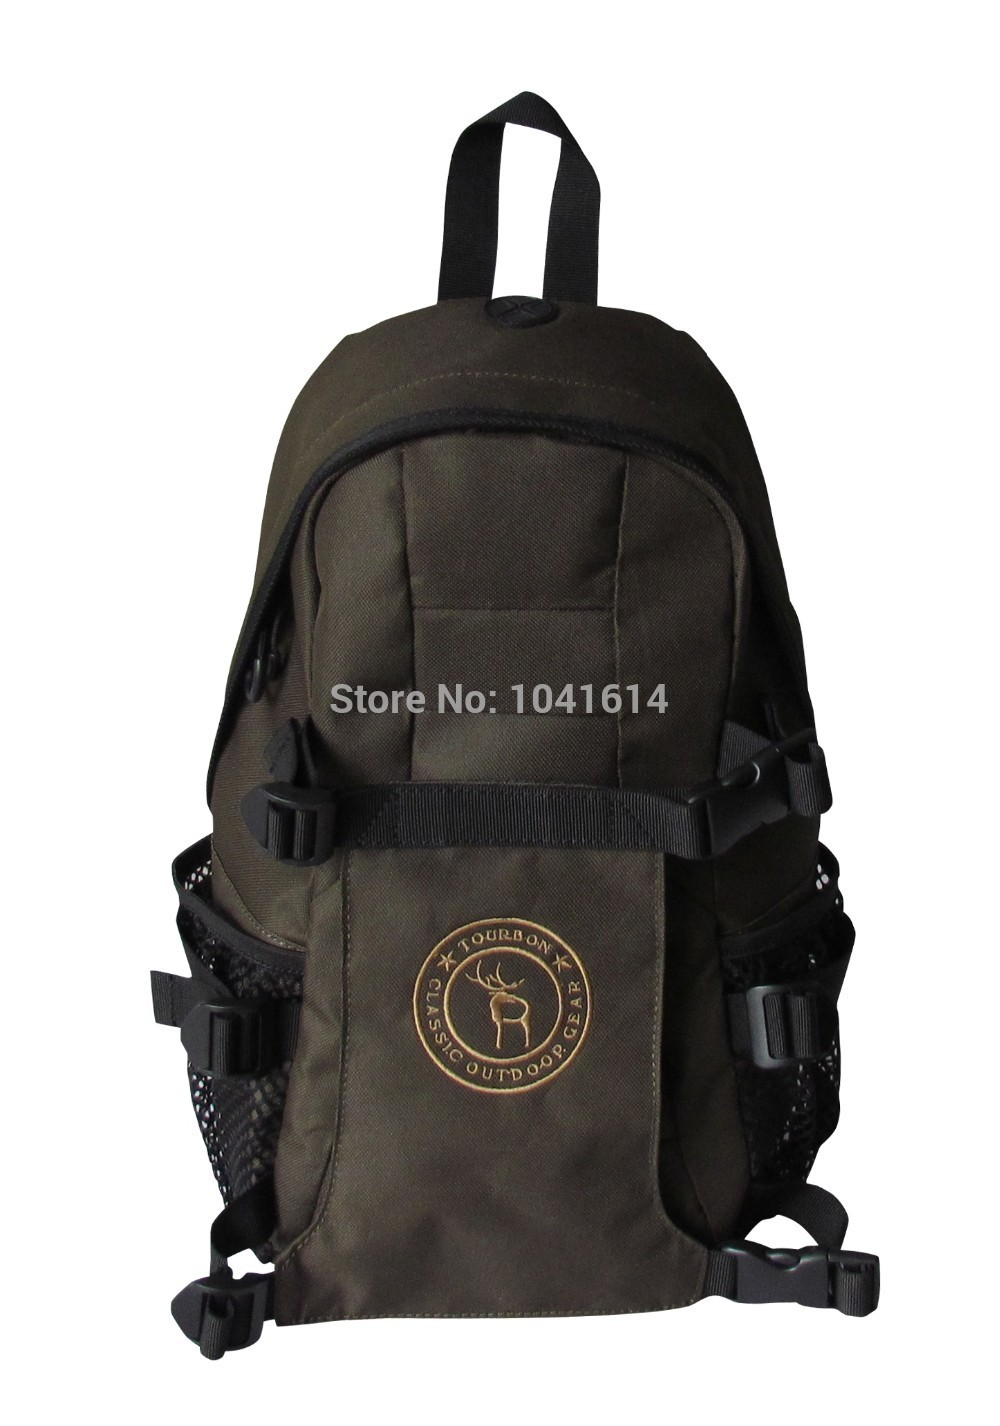 Discount Hiking Backpacks fwXgpb0I